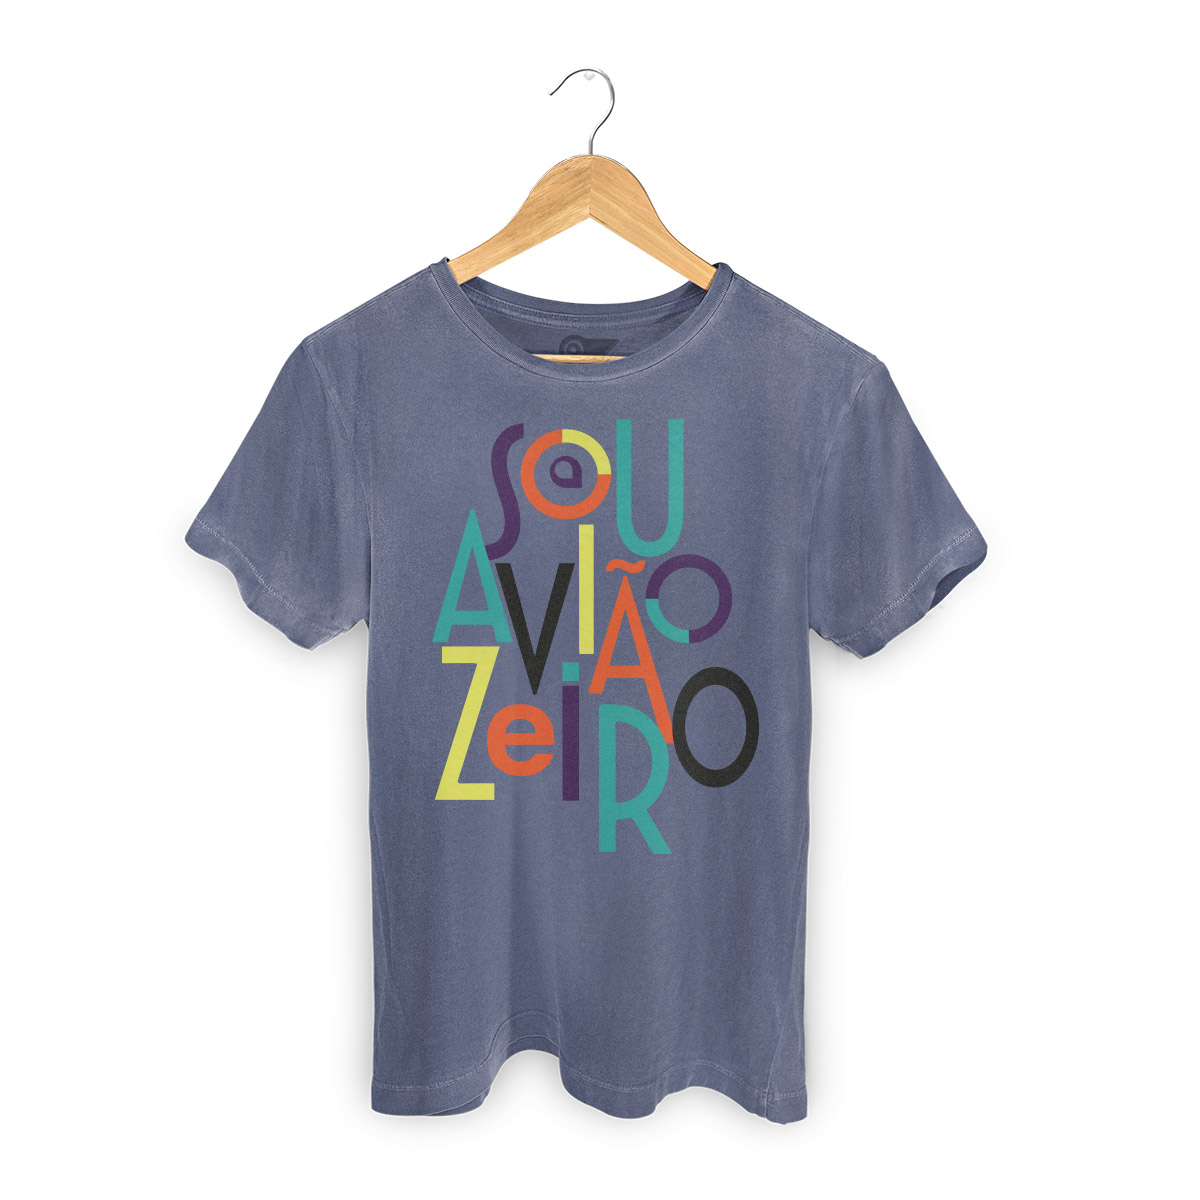 T-shirt Premium Masculina Avi�es do Forr� Sou Avi�ozeiro